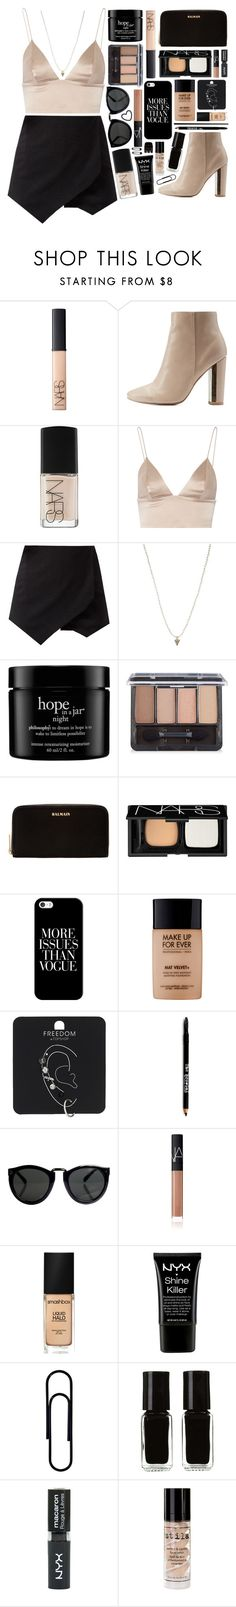 """""""Outfit 205"""" by holass ❤ liked on Polyvore featuring NARS Cosmetics, Qupid, T By Alexander Wang, ASOS, philosophy, COVERGIRL, Balmain, Casetify, MAKE UP FOR EVER and Topshop"""